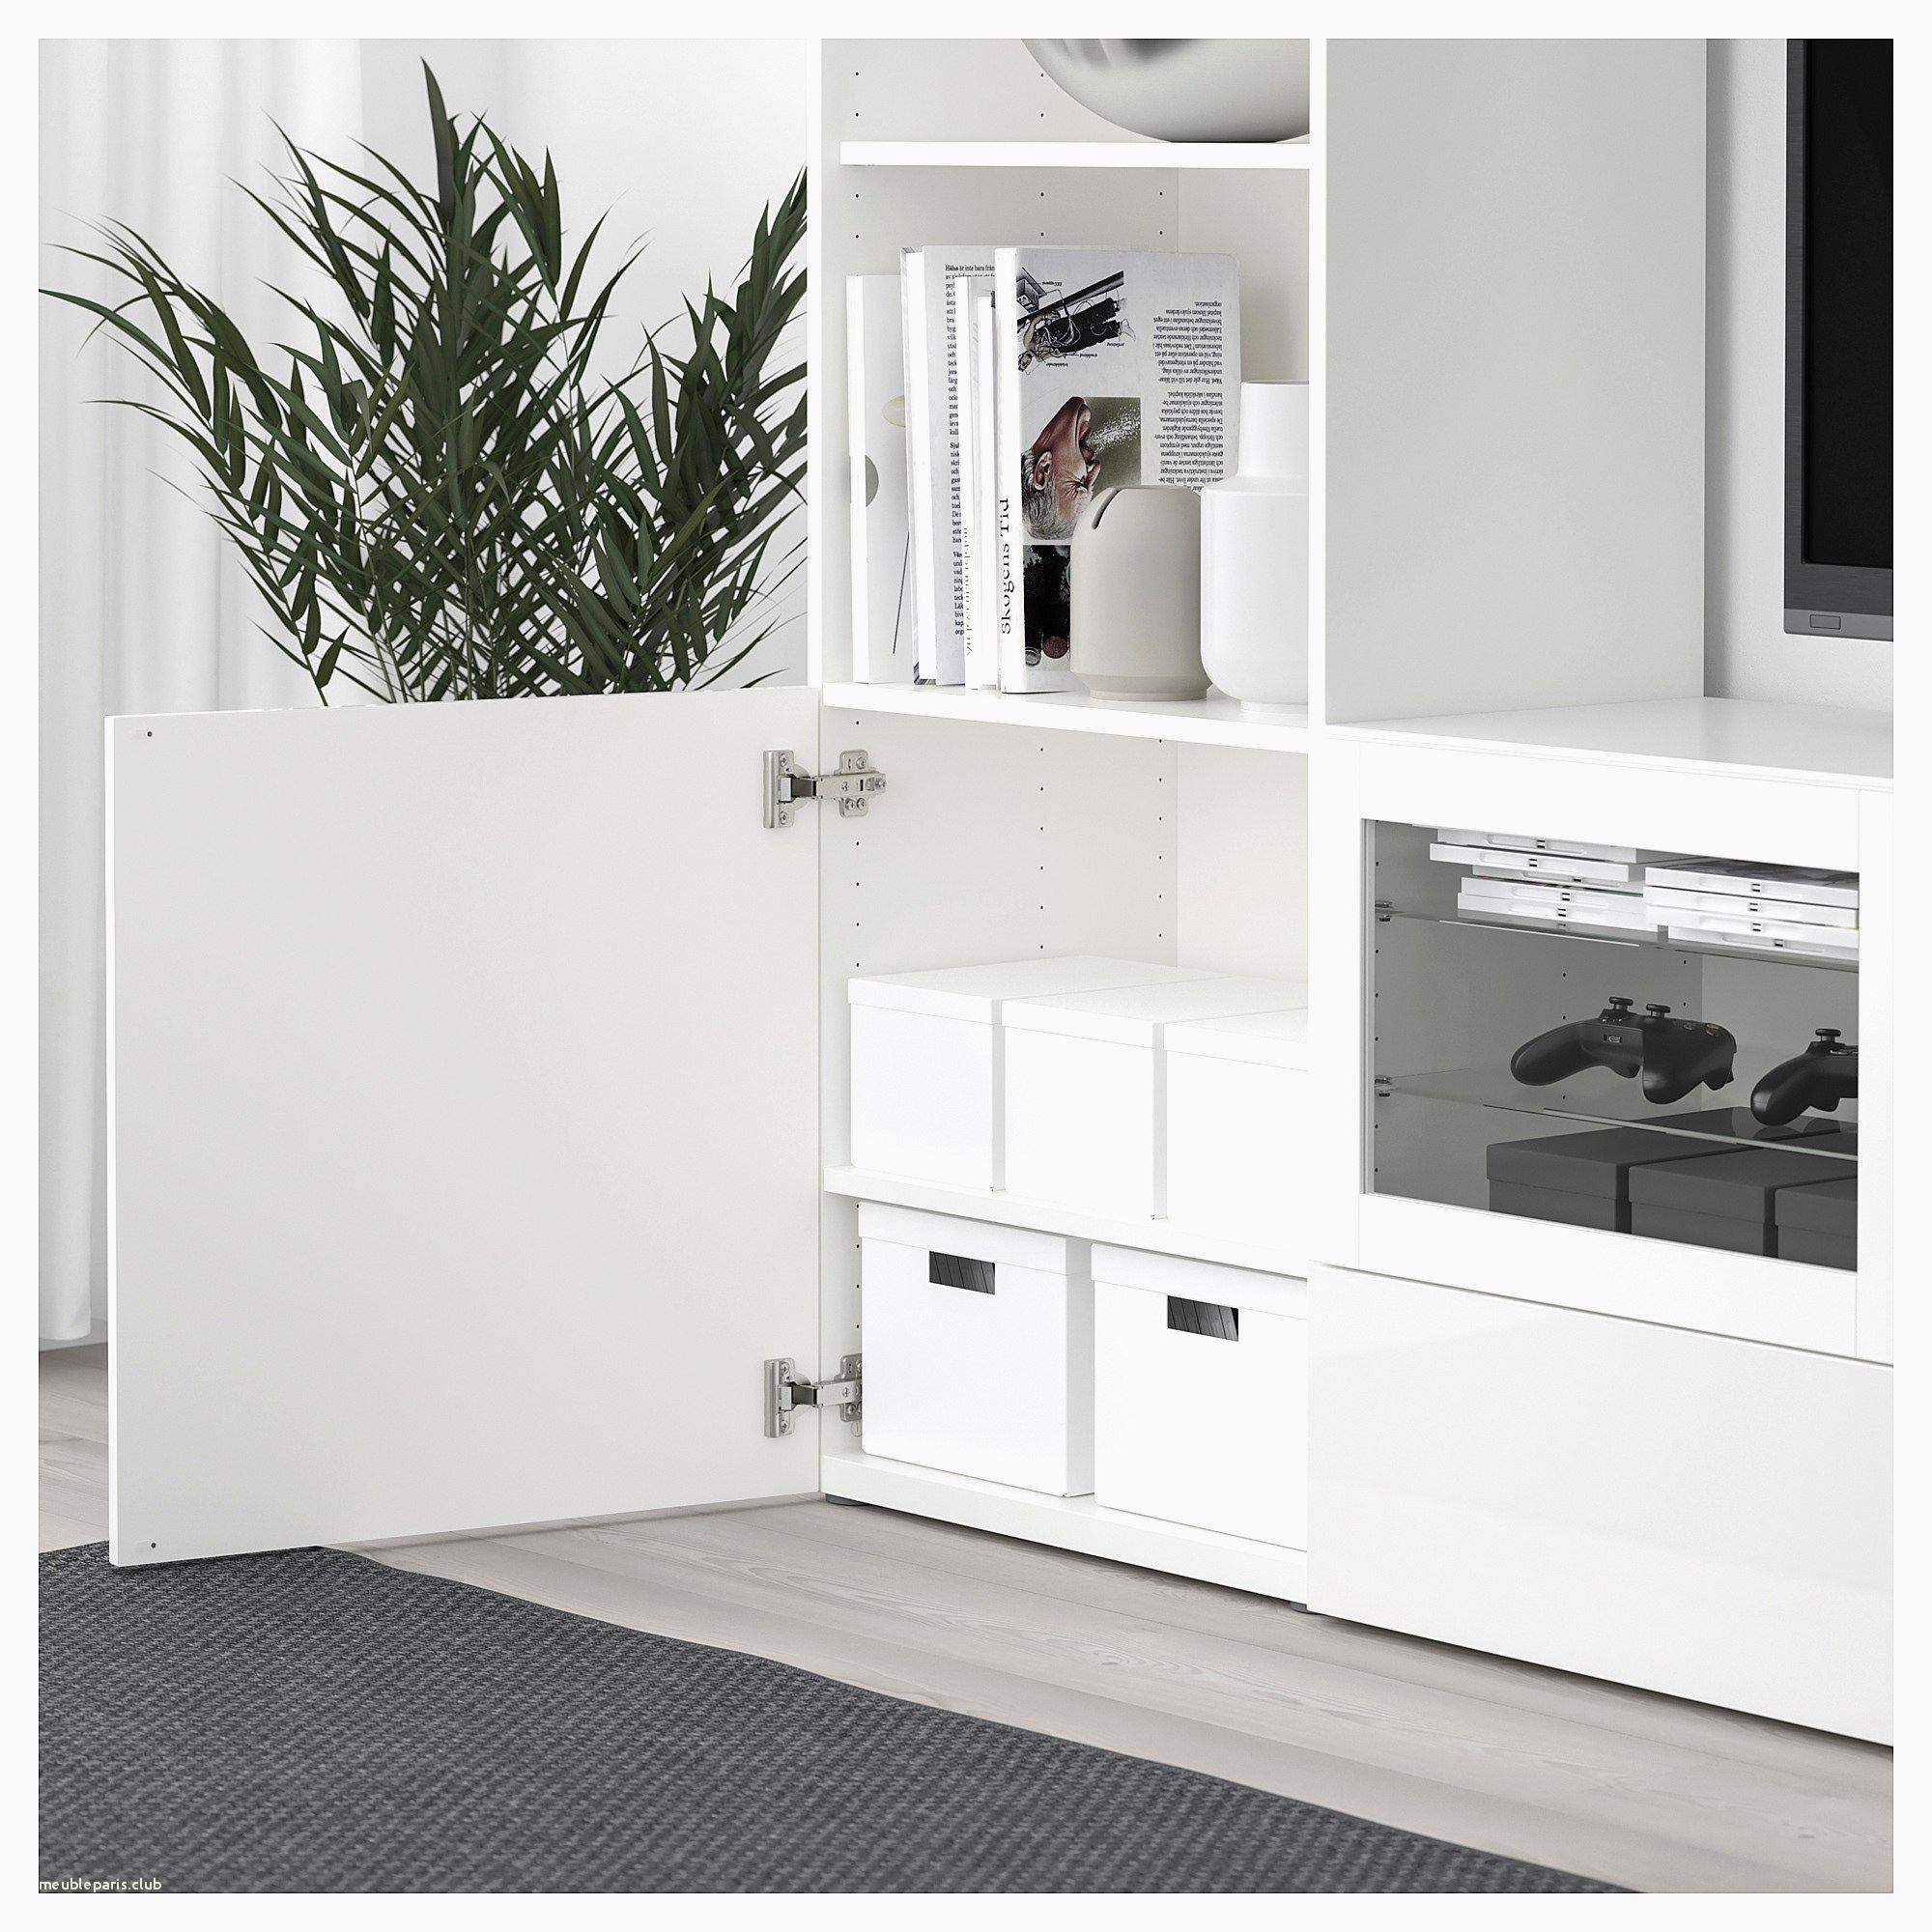 Lit Armoire Ikea Génial Ikea Lit Armoire Escamotable Beautiful Lit Escamotable Horizontal